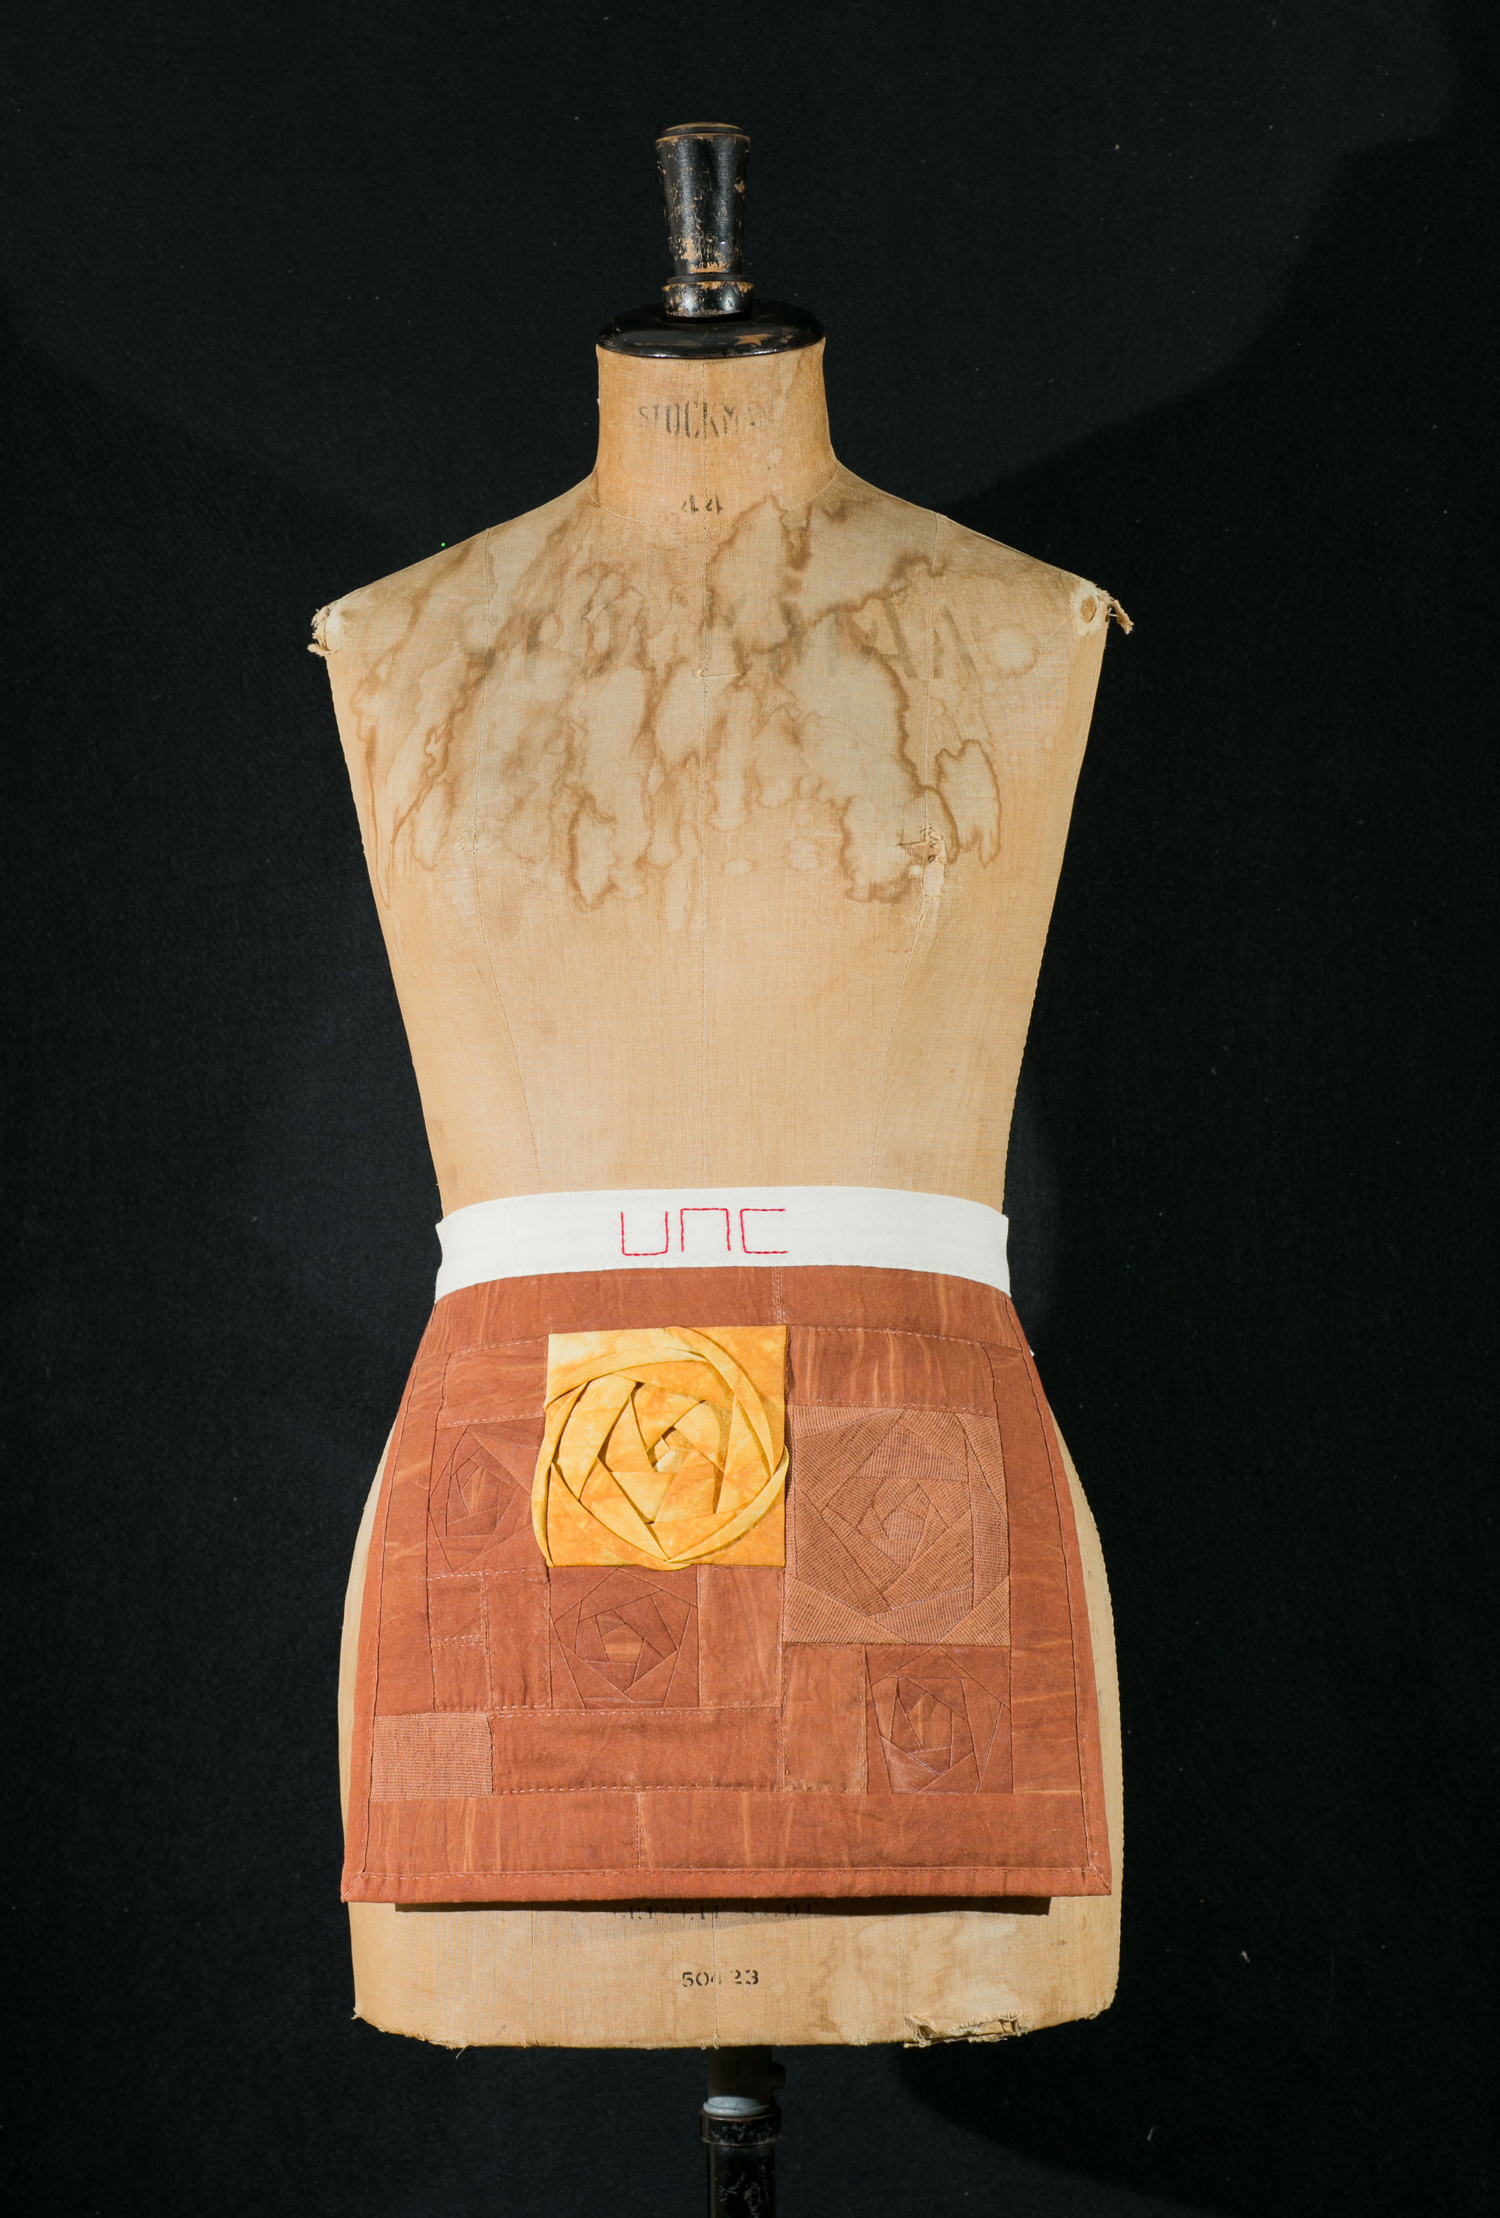 Mary Elizabeth Arnold Hines: My Mother's Sister      Materials:    Jeju Island persimmon dyed cotton, Jeju Island persimmon dyed cotton gauze, hand dyed cotton,   cotton muslin, chief value cotton batting, cotton embroidery floss, cotton thread, polyester thread    Techniques:    Machine sewn 3D and flat, traditional and improvisational patchwork, running stitch, backstitch embroidery, bat knot      2014